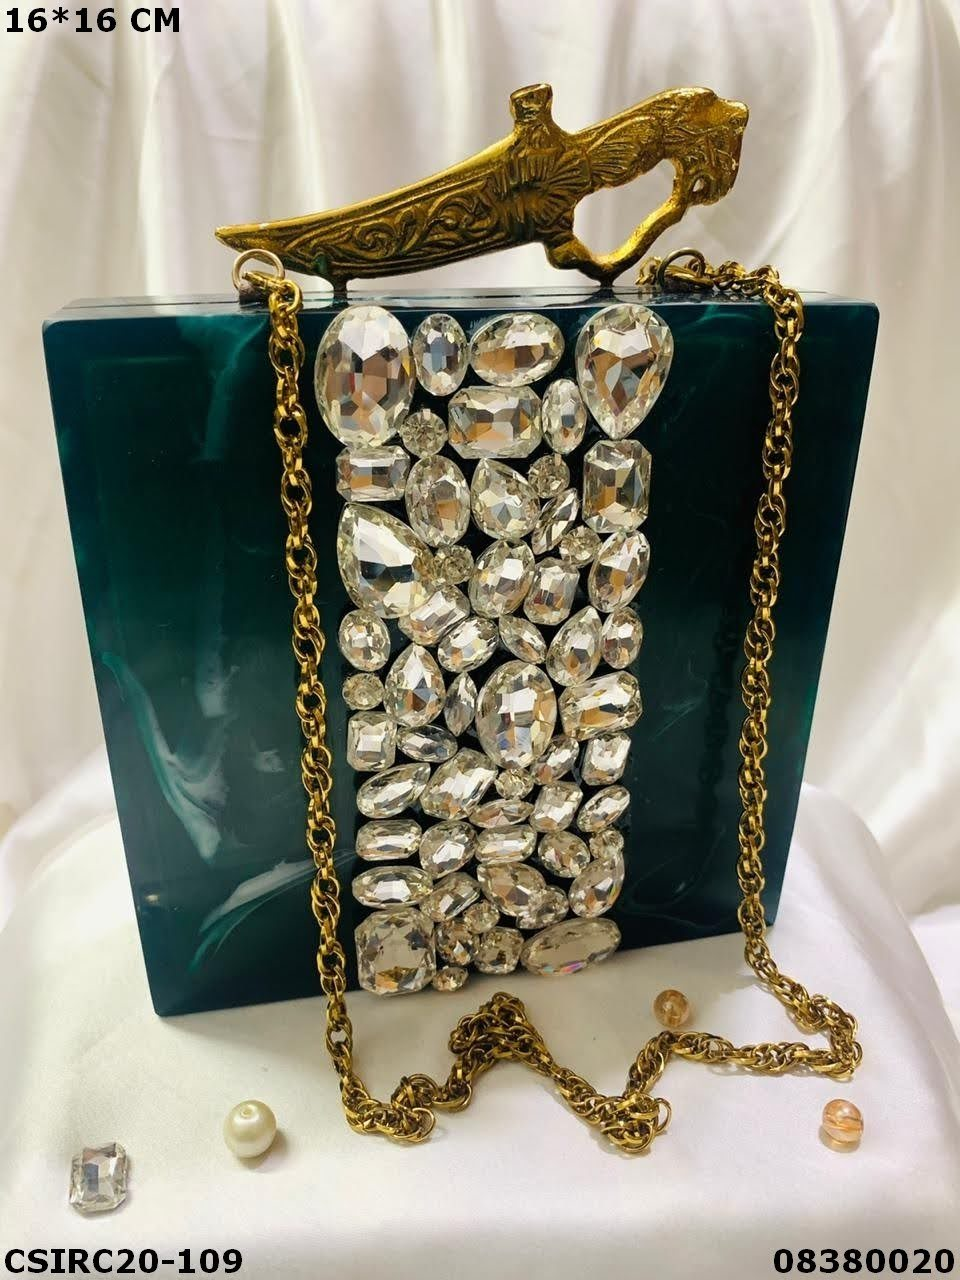 Exclusive Resin Clutches